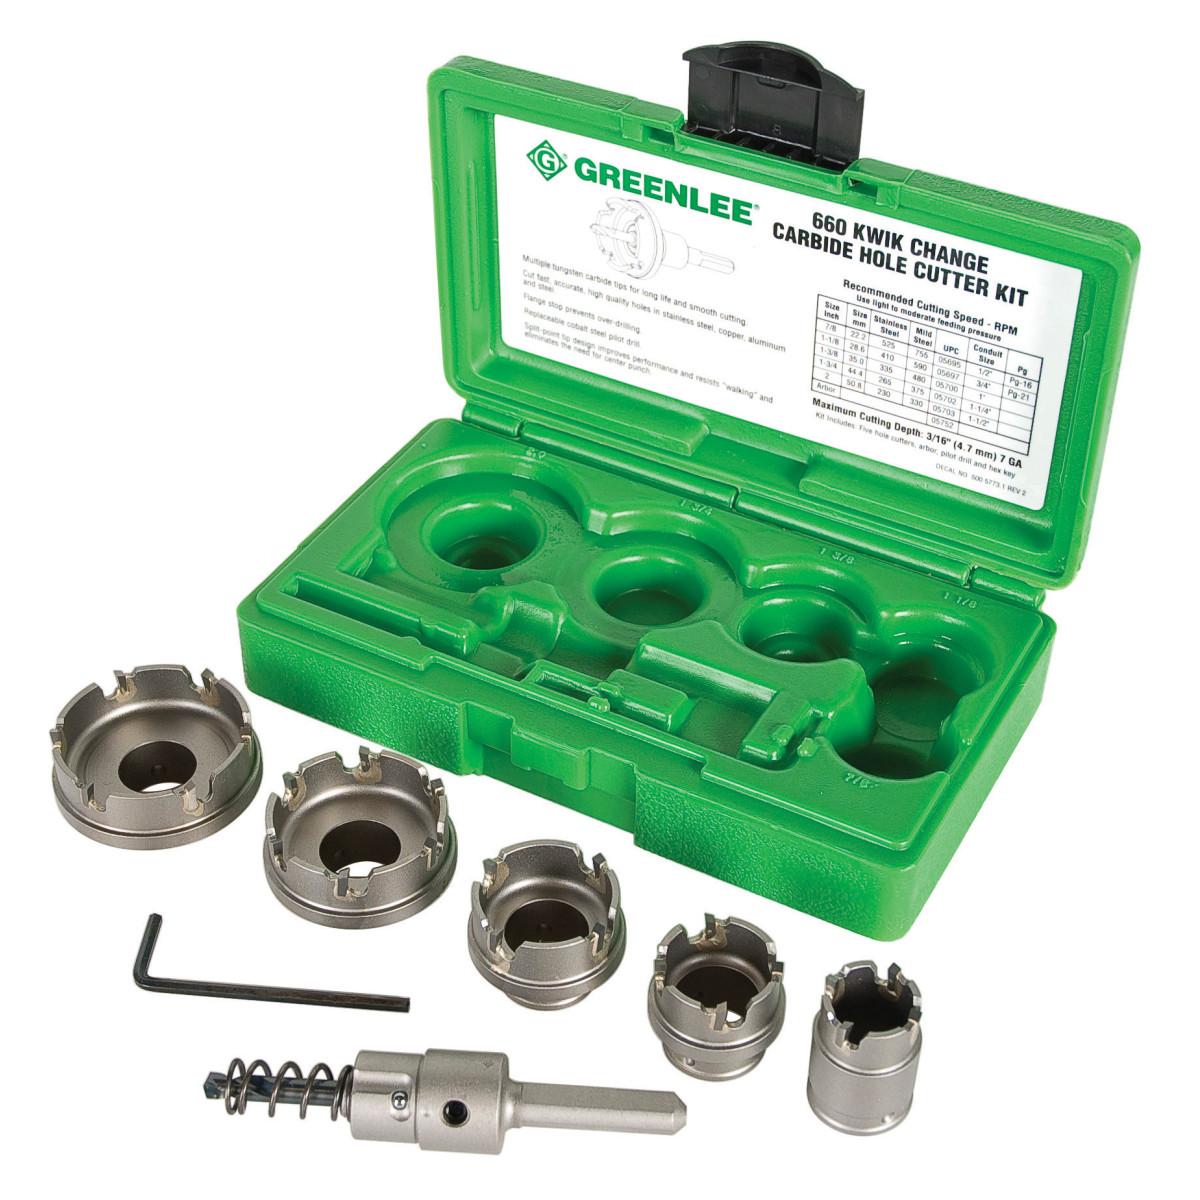 "Greenlee 660 7pc Steel Hole Cutter Kit, Carbide Tipped, 7/8"" to 2"", includes Arbor, Hex Key & Case"